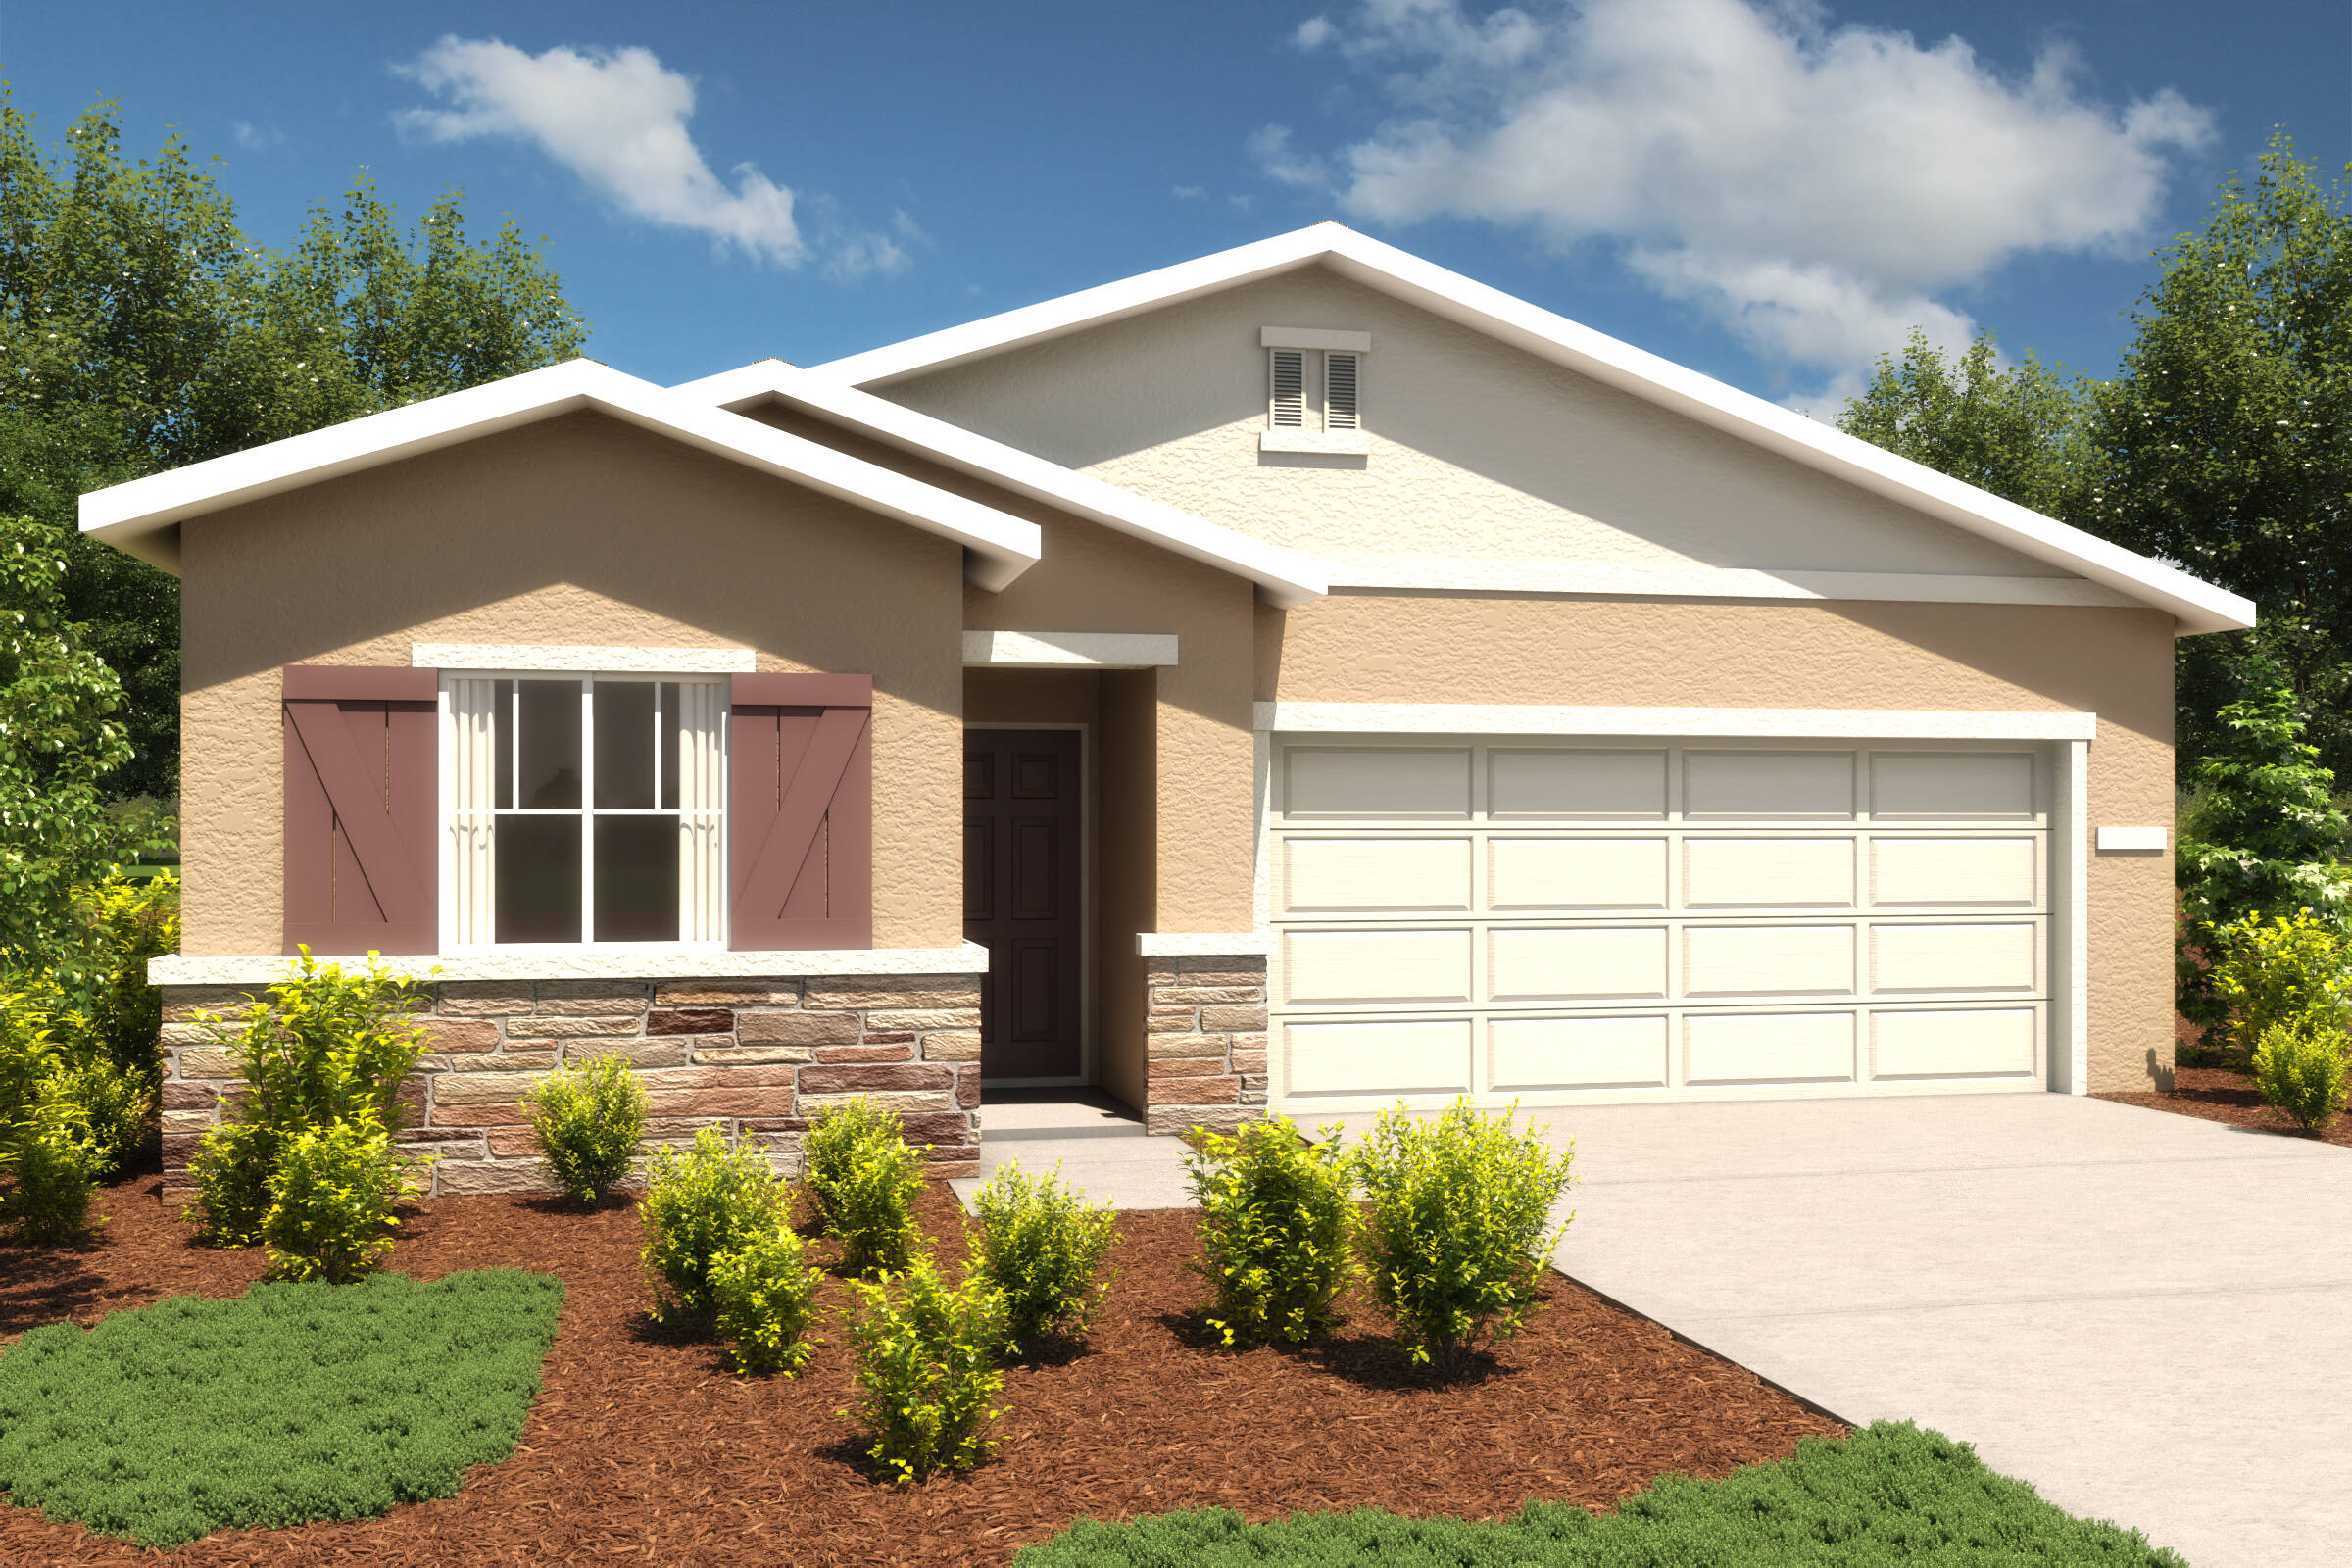 3520 peony craftsman b new homes merced california